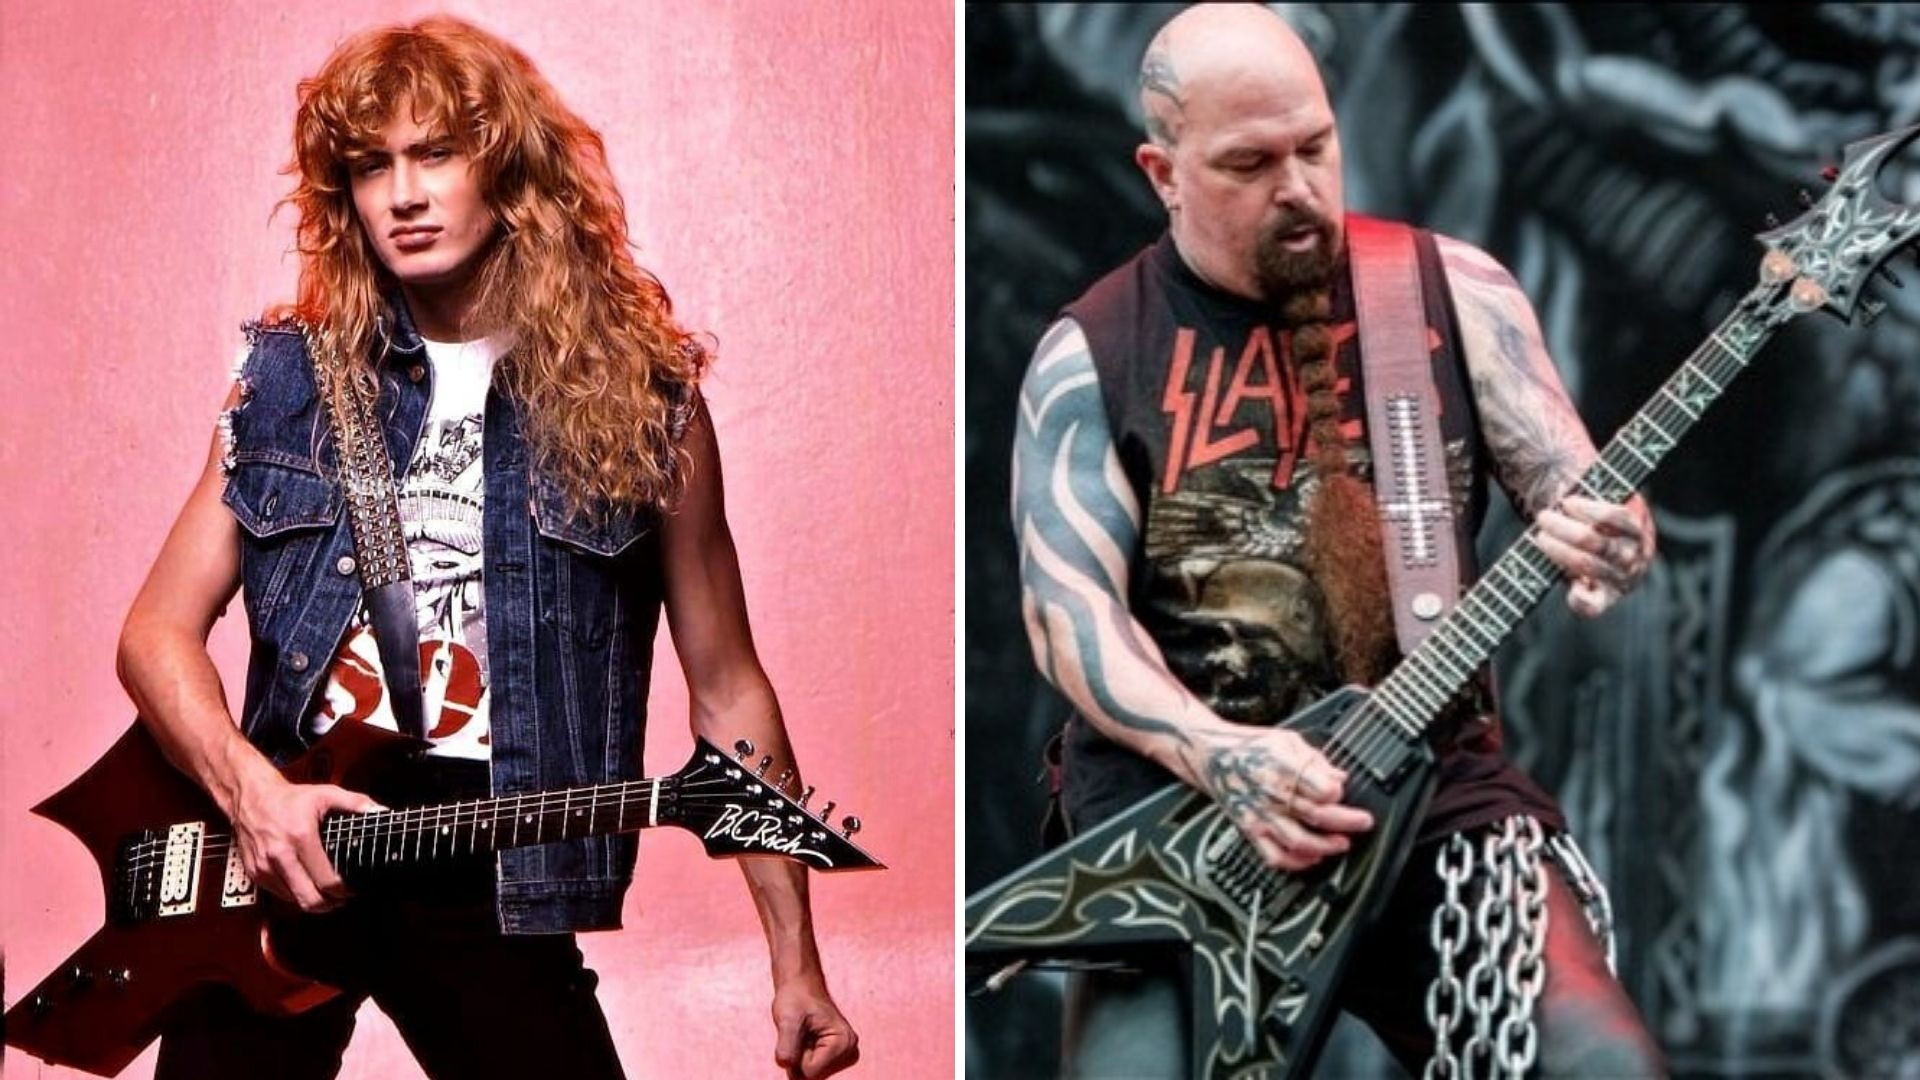 bc rich dave mustaine kerry king